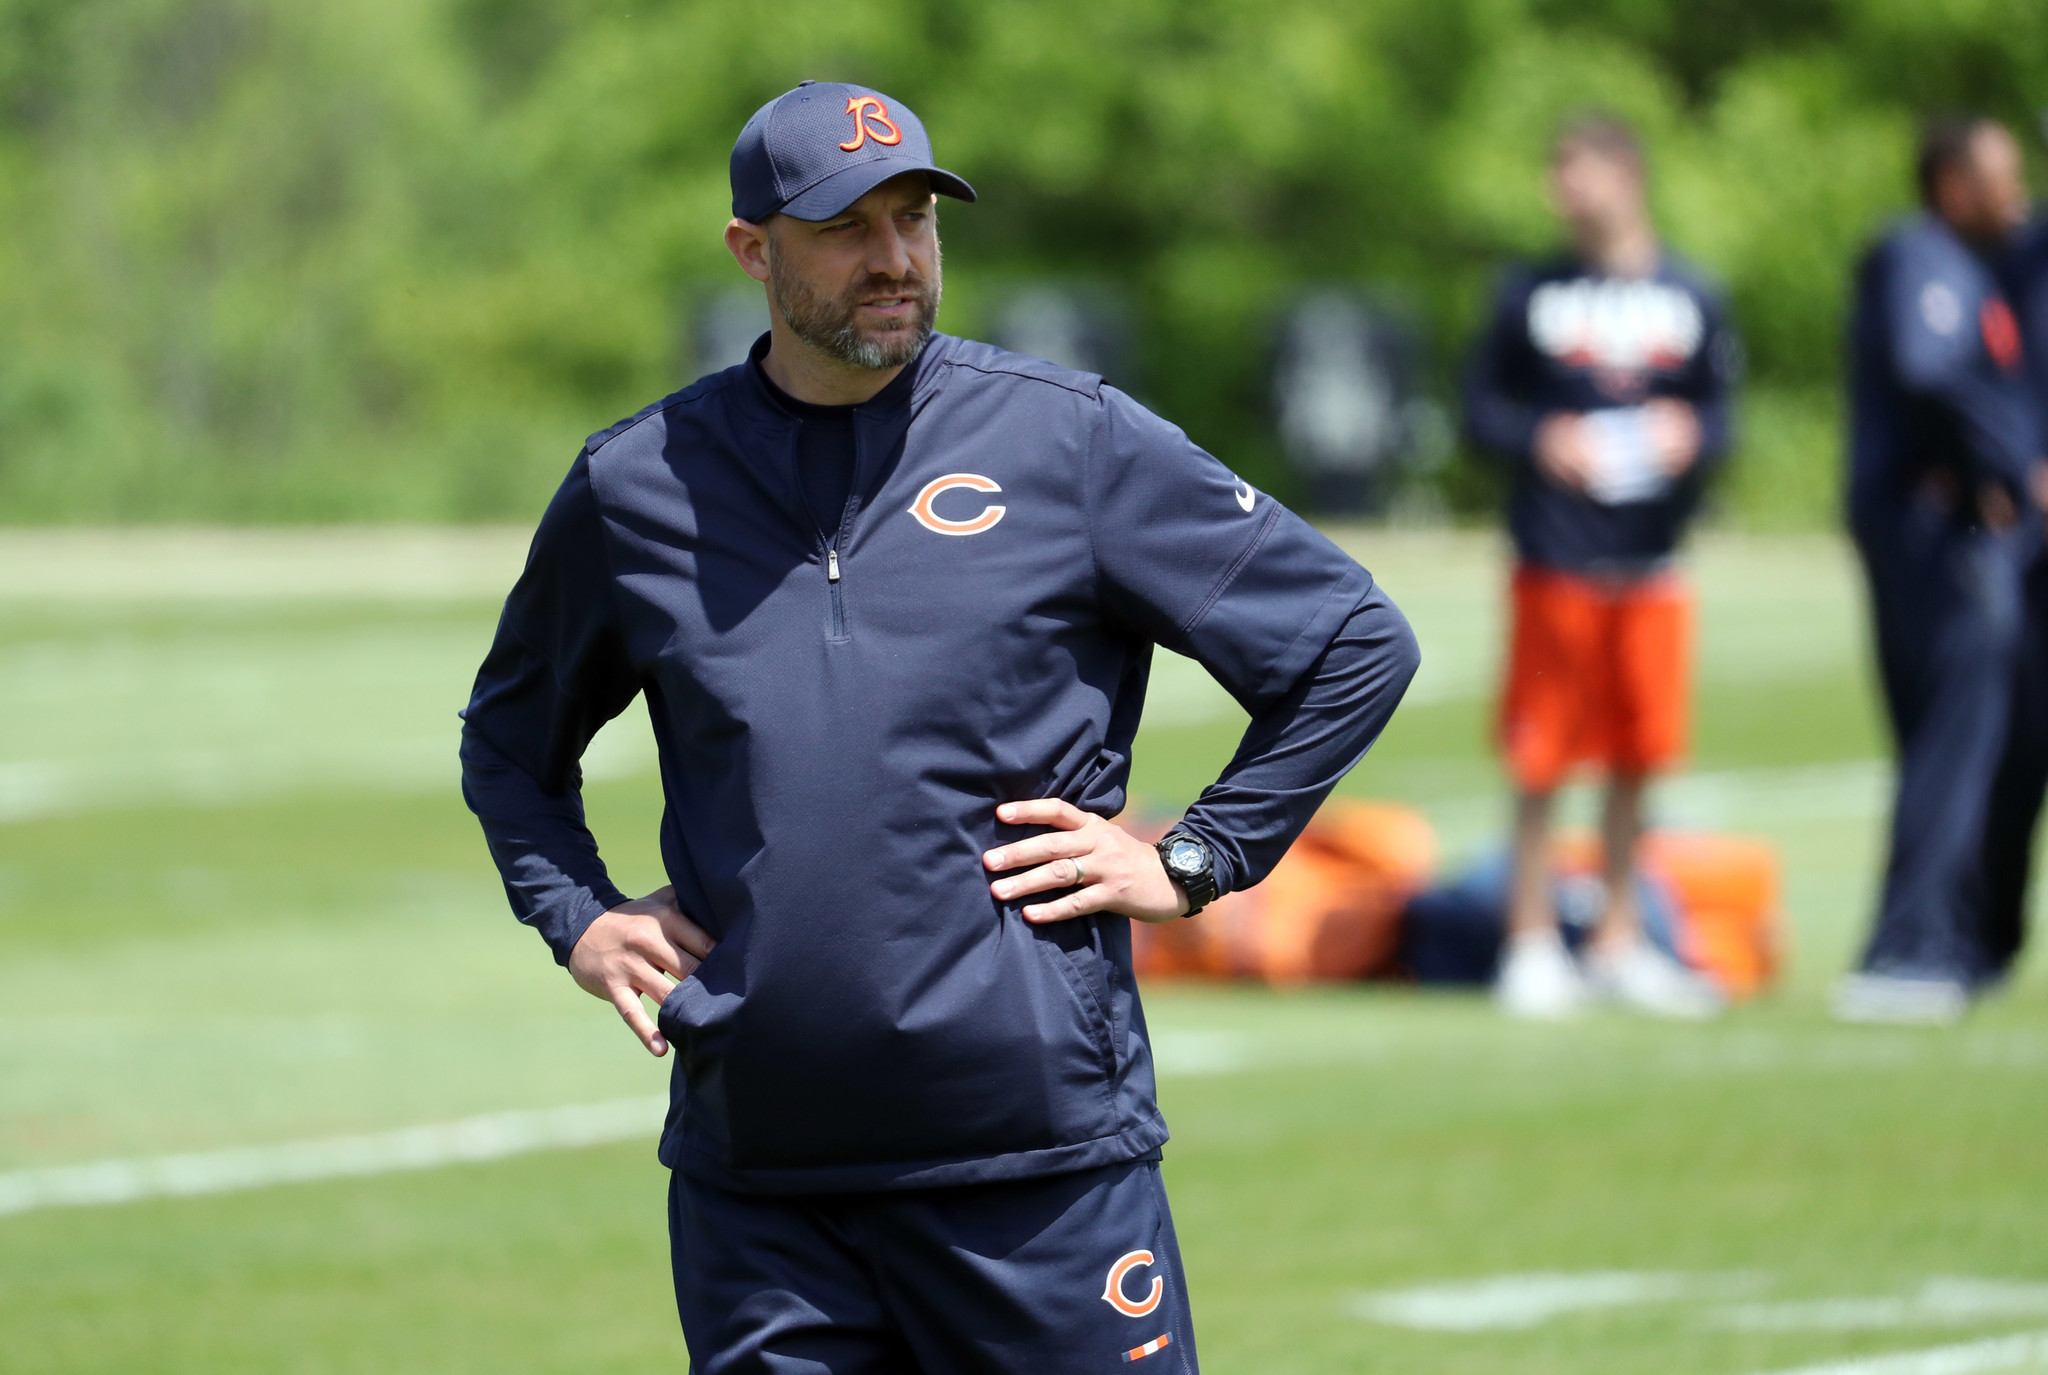 Ct-podcast-next-stop-bears-training-camp-20180608